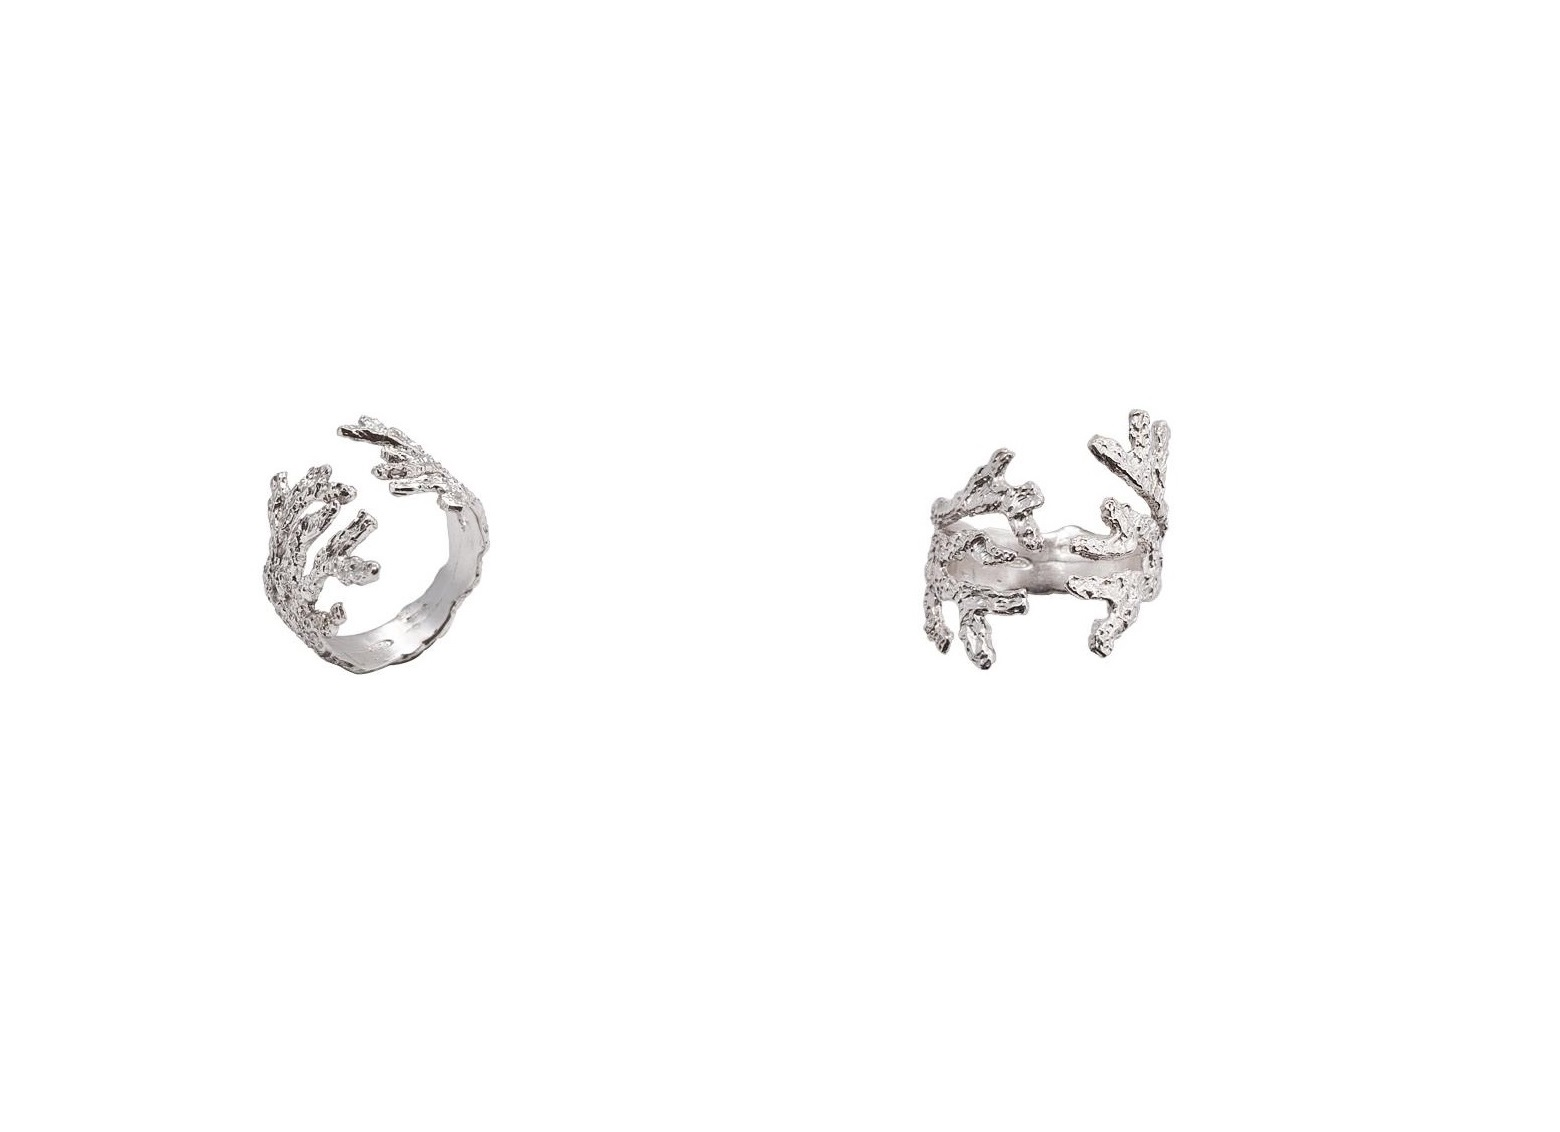 Silver coral shaped open ring